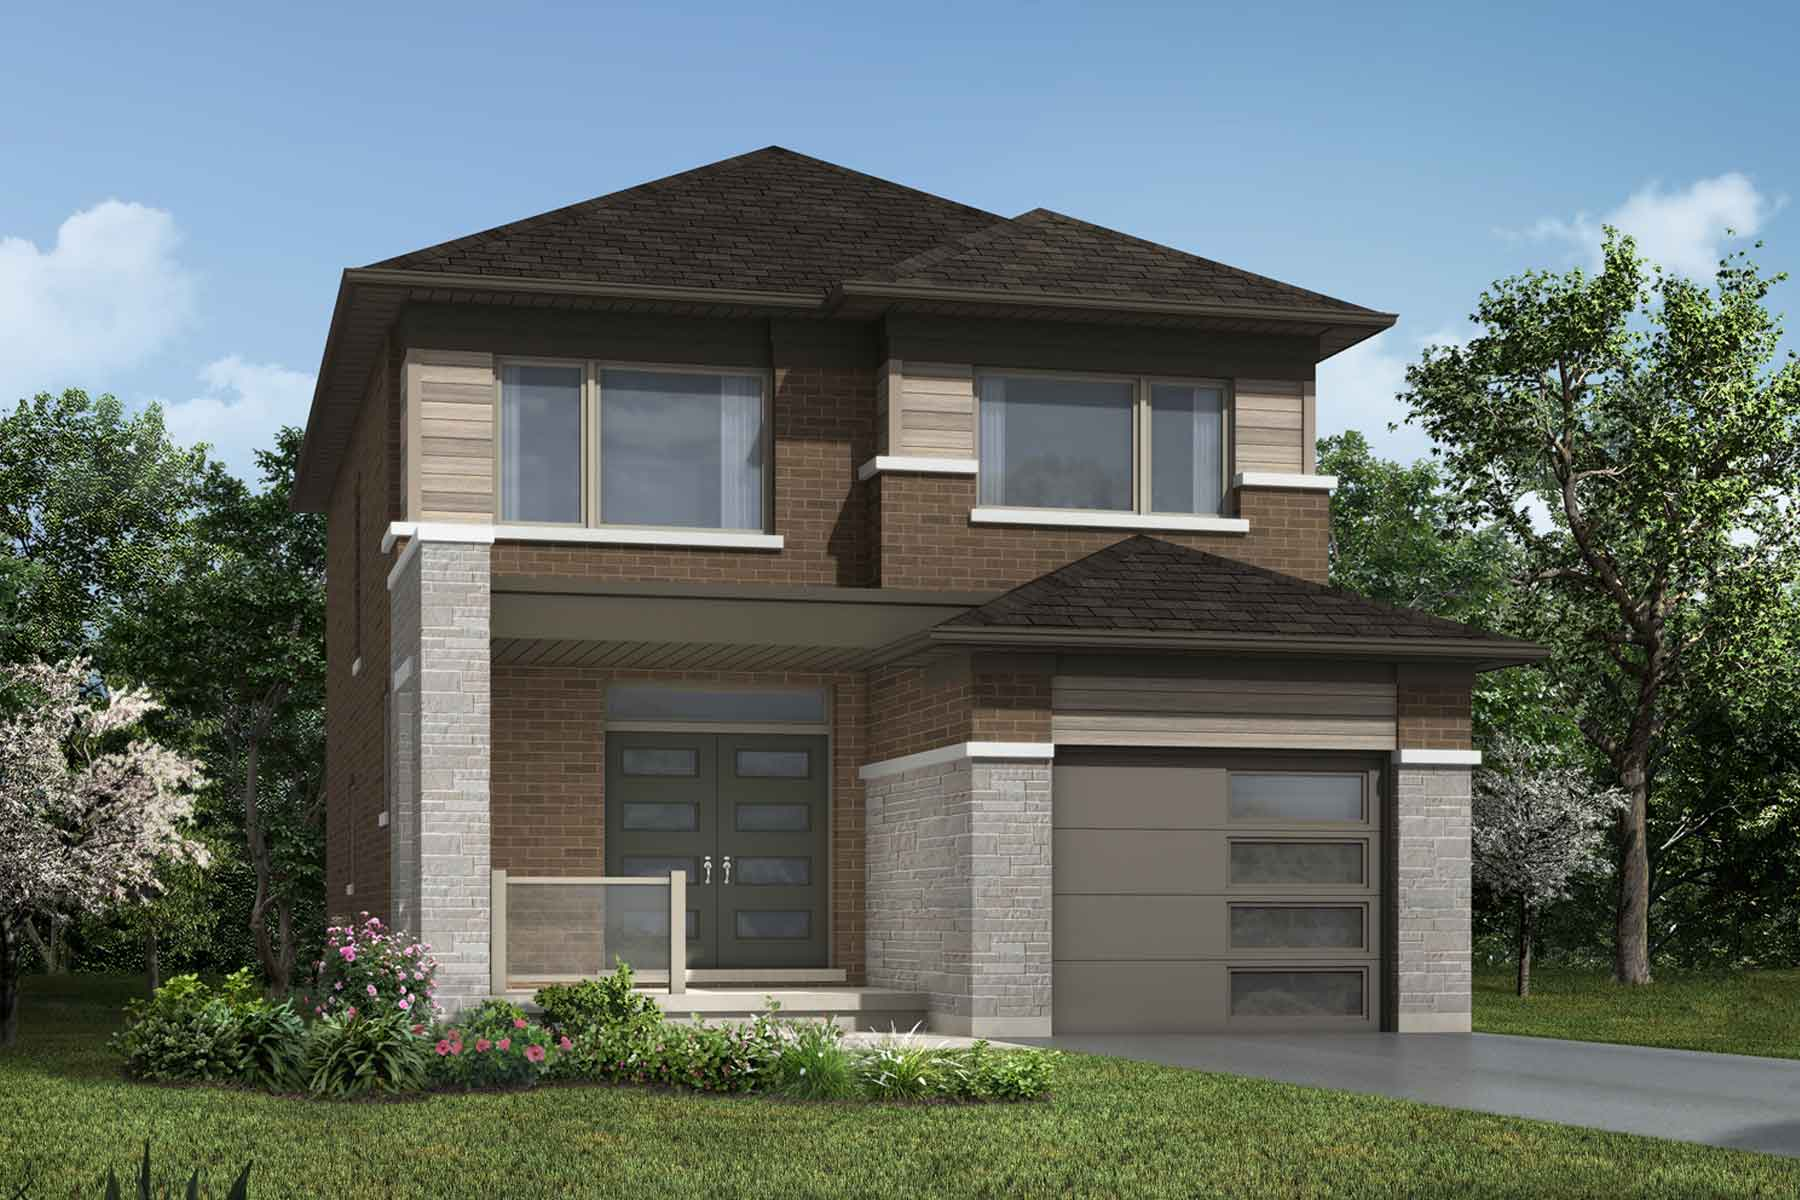 The Millbank End Plan transitional_southestates_alderview_main at Wildflower Crossing in Kitchener Ontario by Mattamy Homes